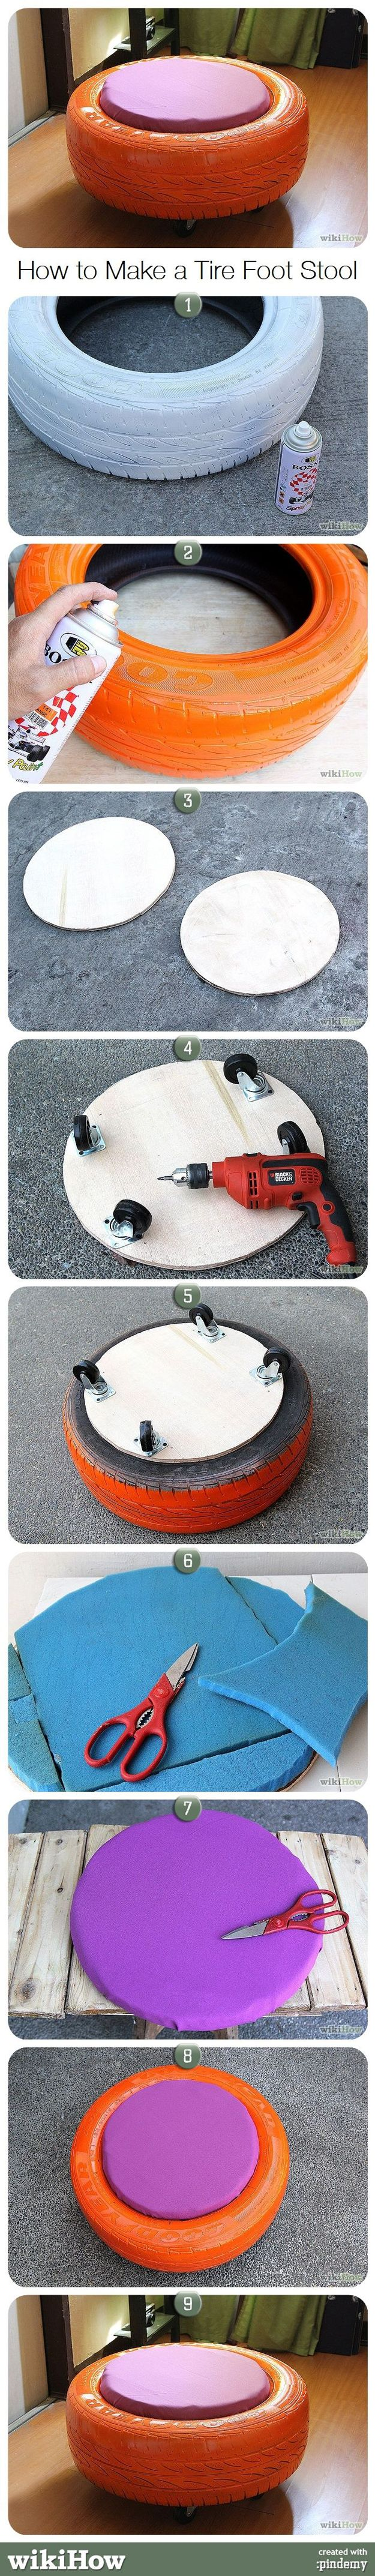 DIY Tire Foot Stool | Cool DIY Man Cave Furniture on a Budget by Diy Ready http://diyready.com/23-more-awesome-man-cave-ideas/